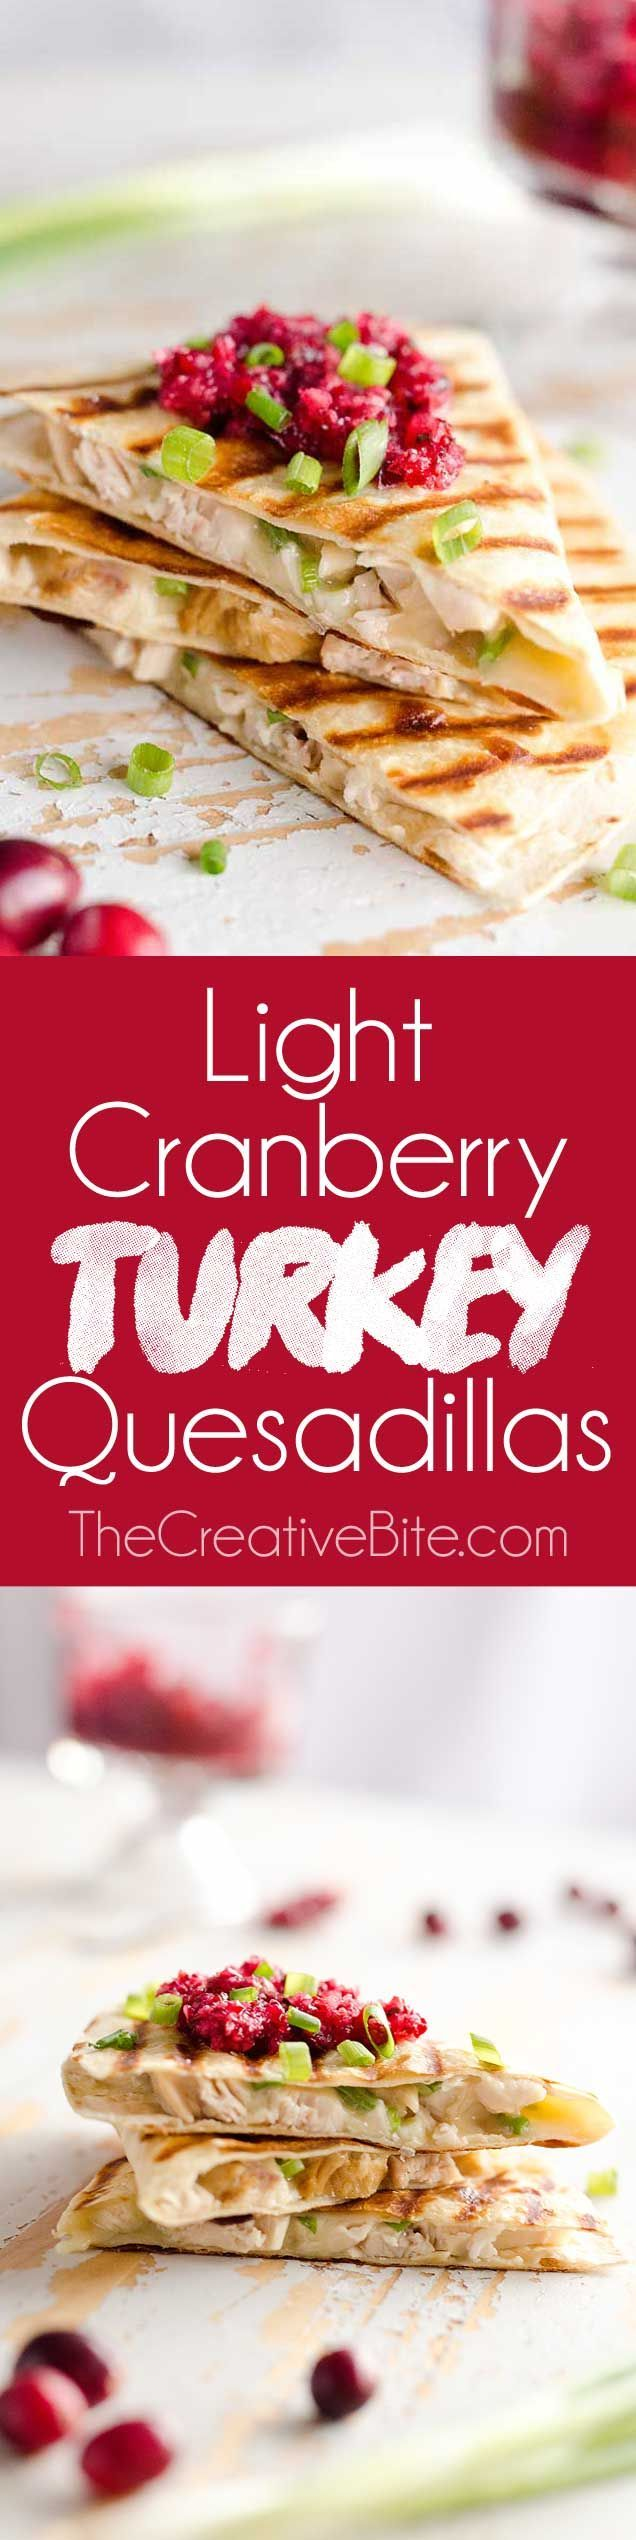 Light Cranberry Turkey Quesadilla are a healthy and easy meal perfect for using up all of that leftover turkey from Thanksgiving! Fill a light tortilla with turkey, Havarti cheese and green onions and top it with cranberry salsa for a delicious and unique dinner after the holidays! #Quesadilla #Healthy #Holiday #Leftovers